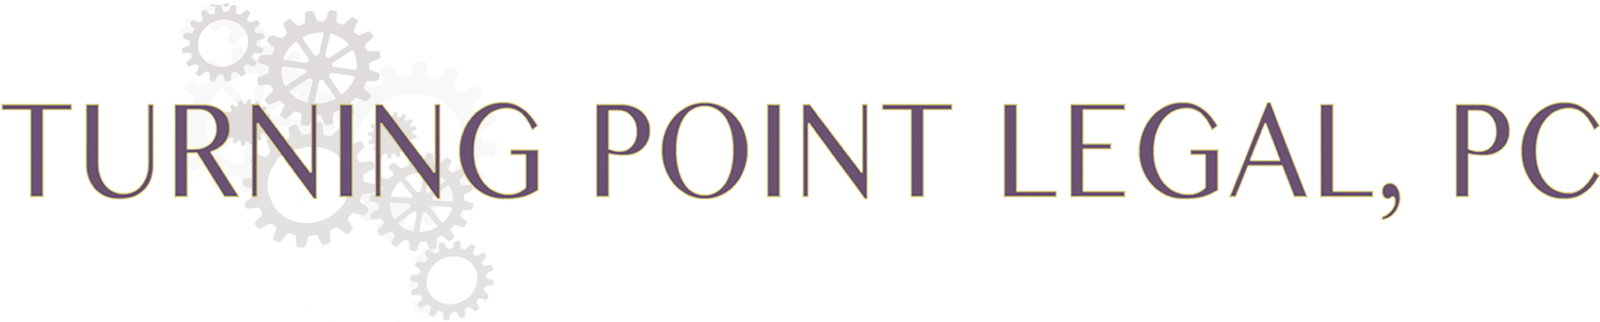 turningpointlegalpc.com